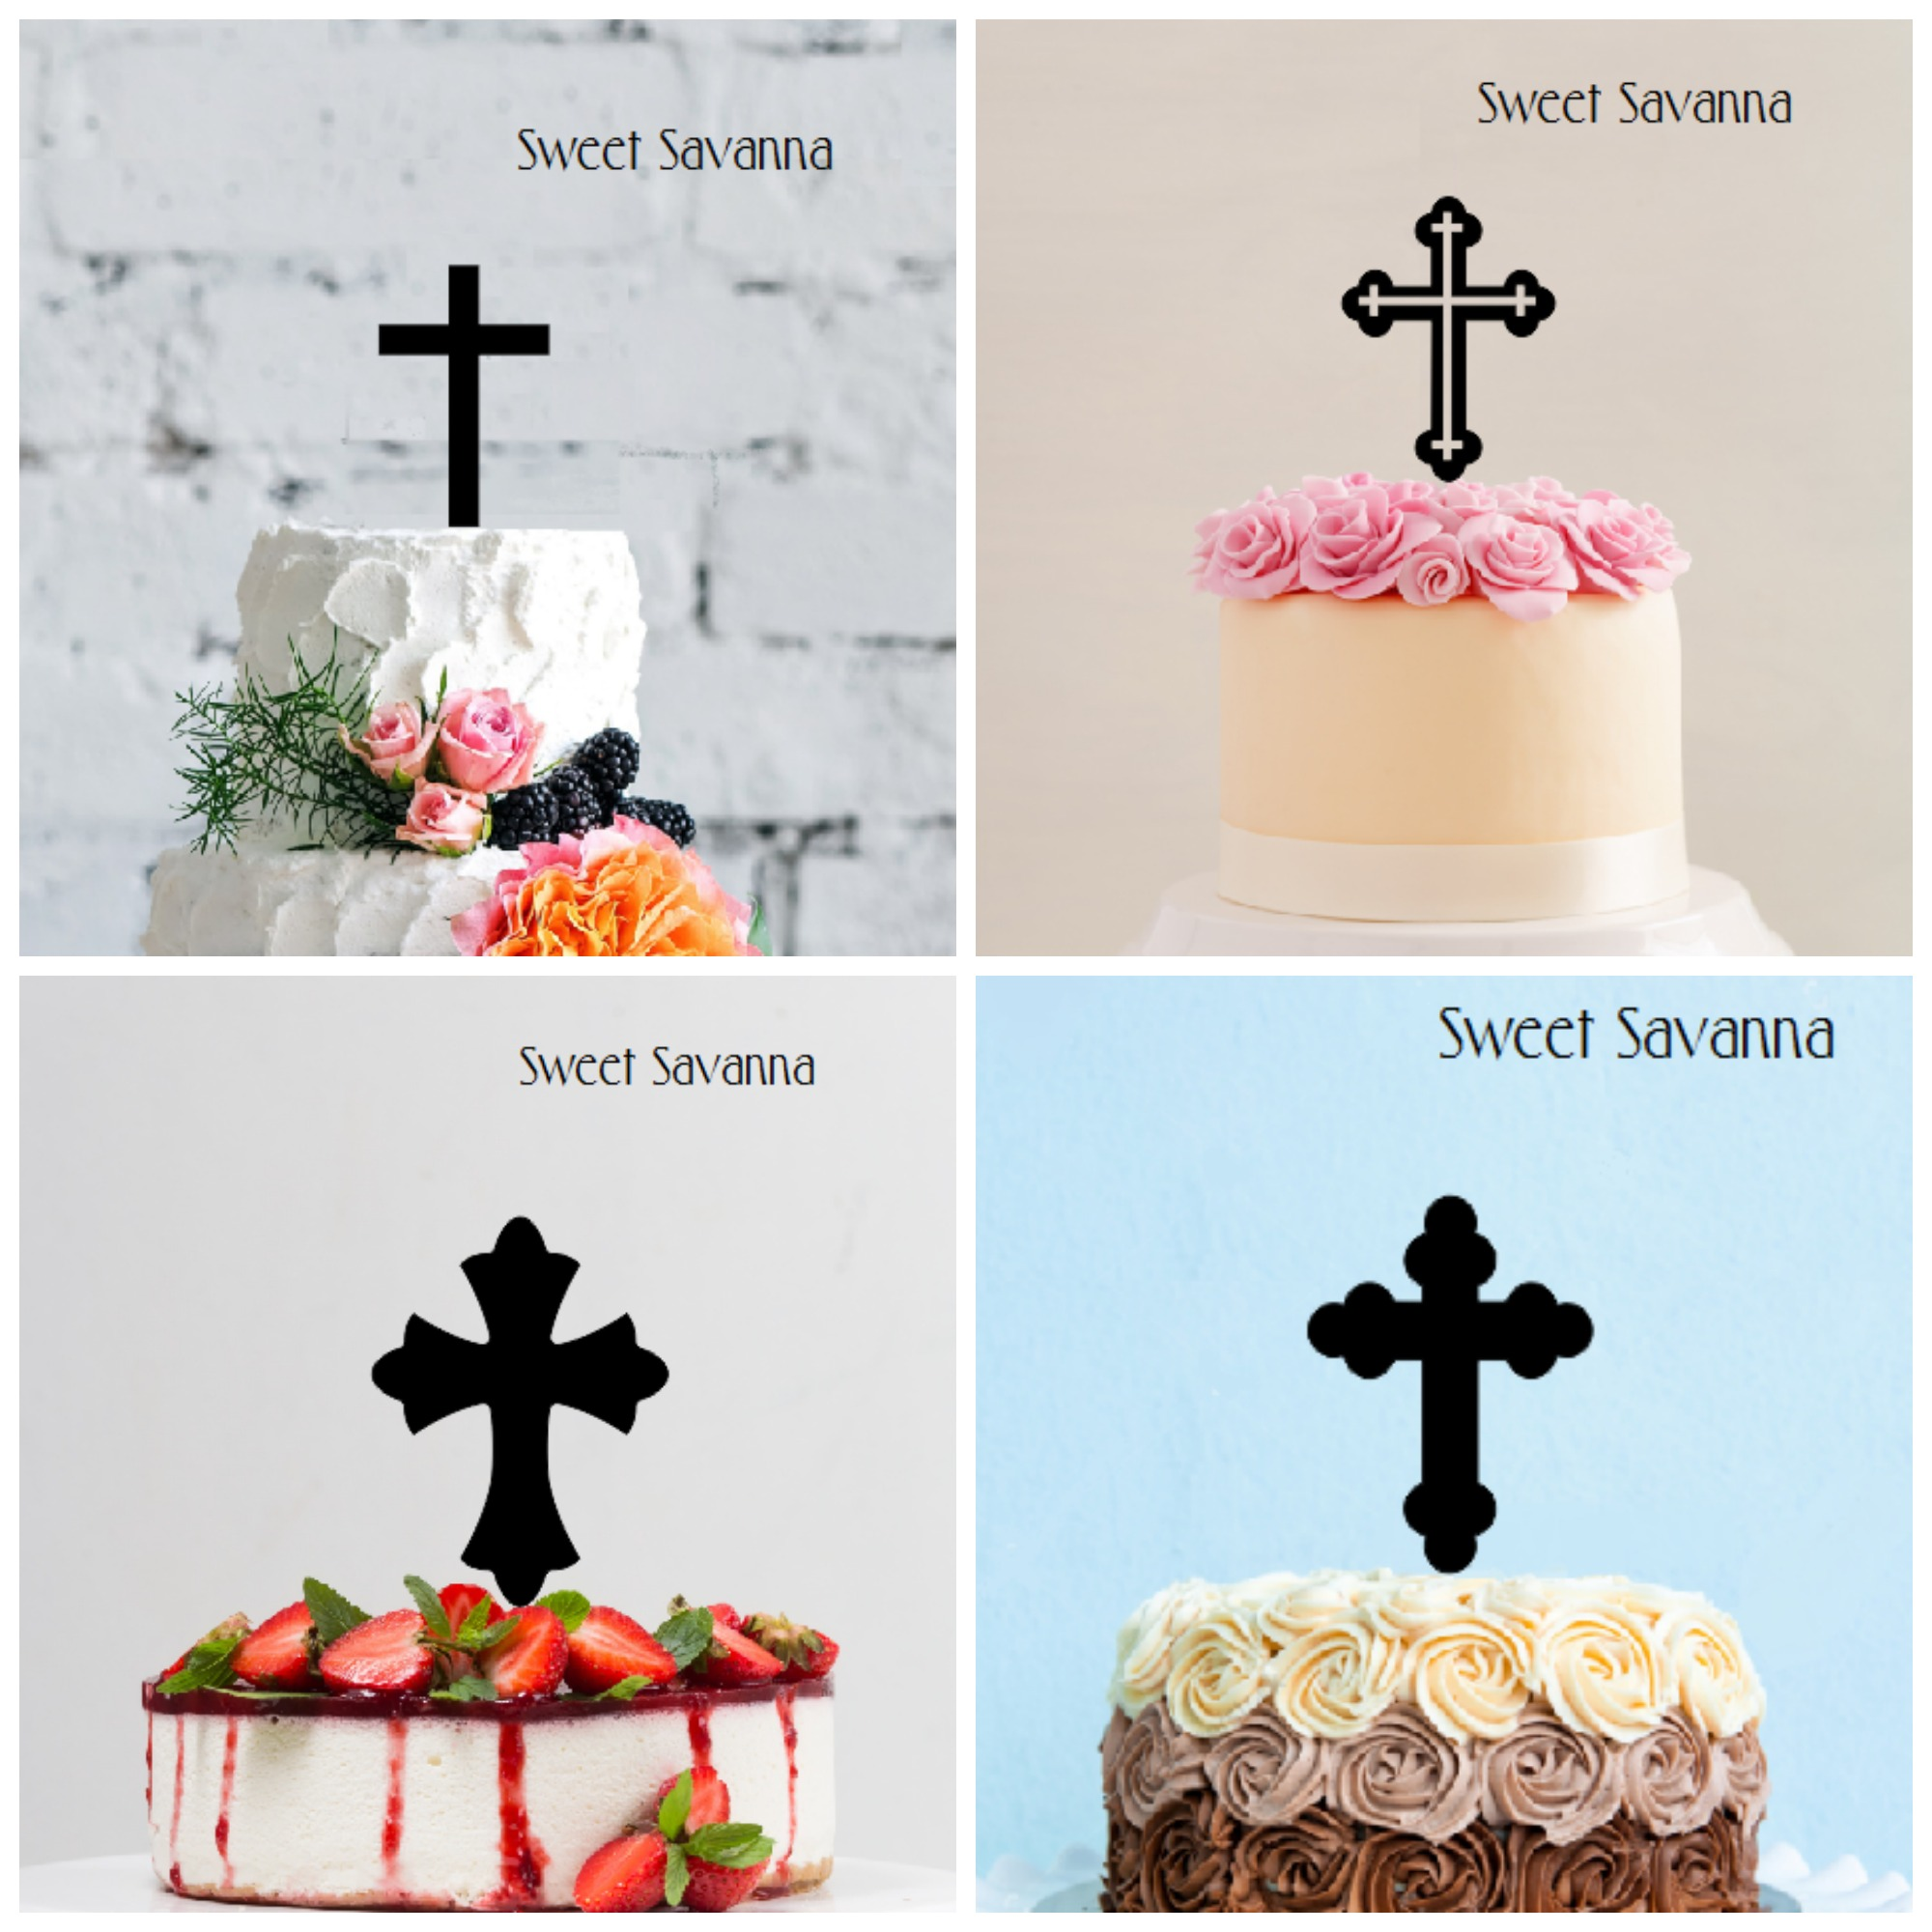 Small Cross Cake Topper 3 5 High 9 Options To Choose From Sweet Savanna Cookie Cutters